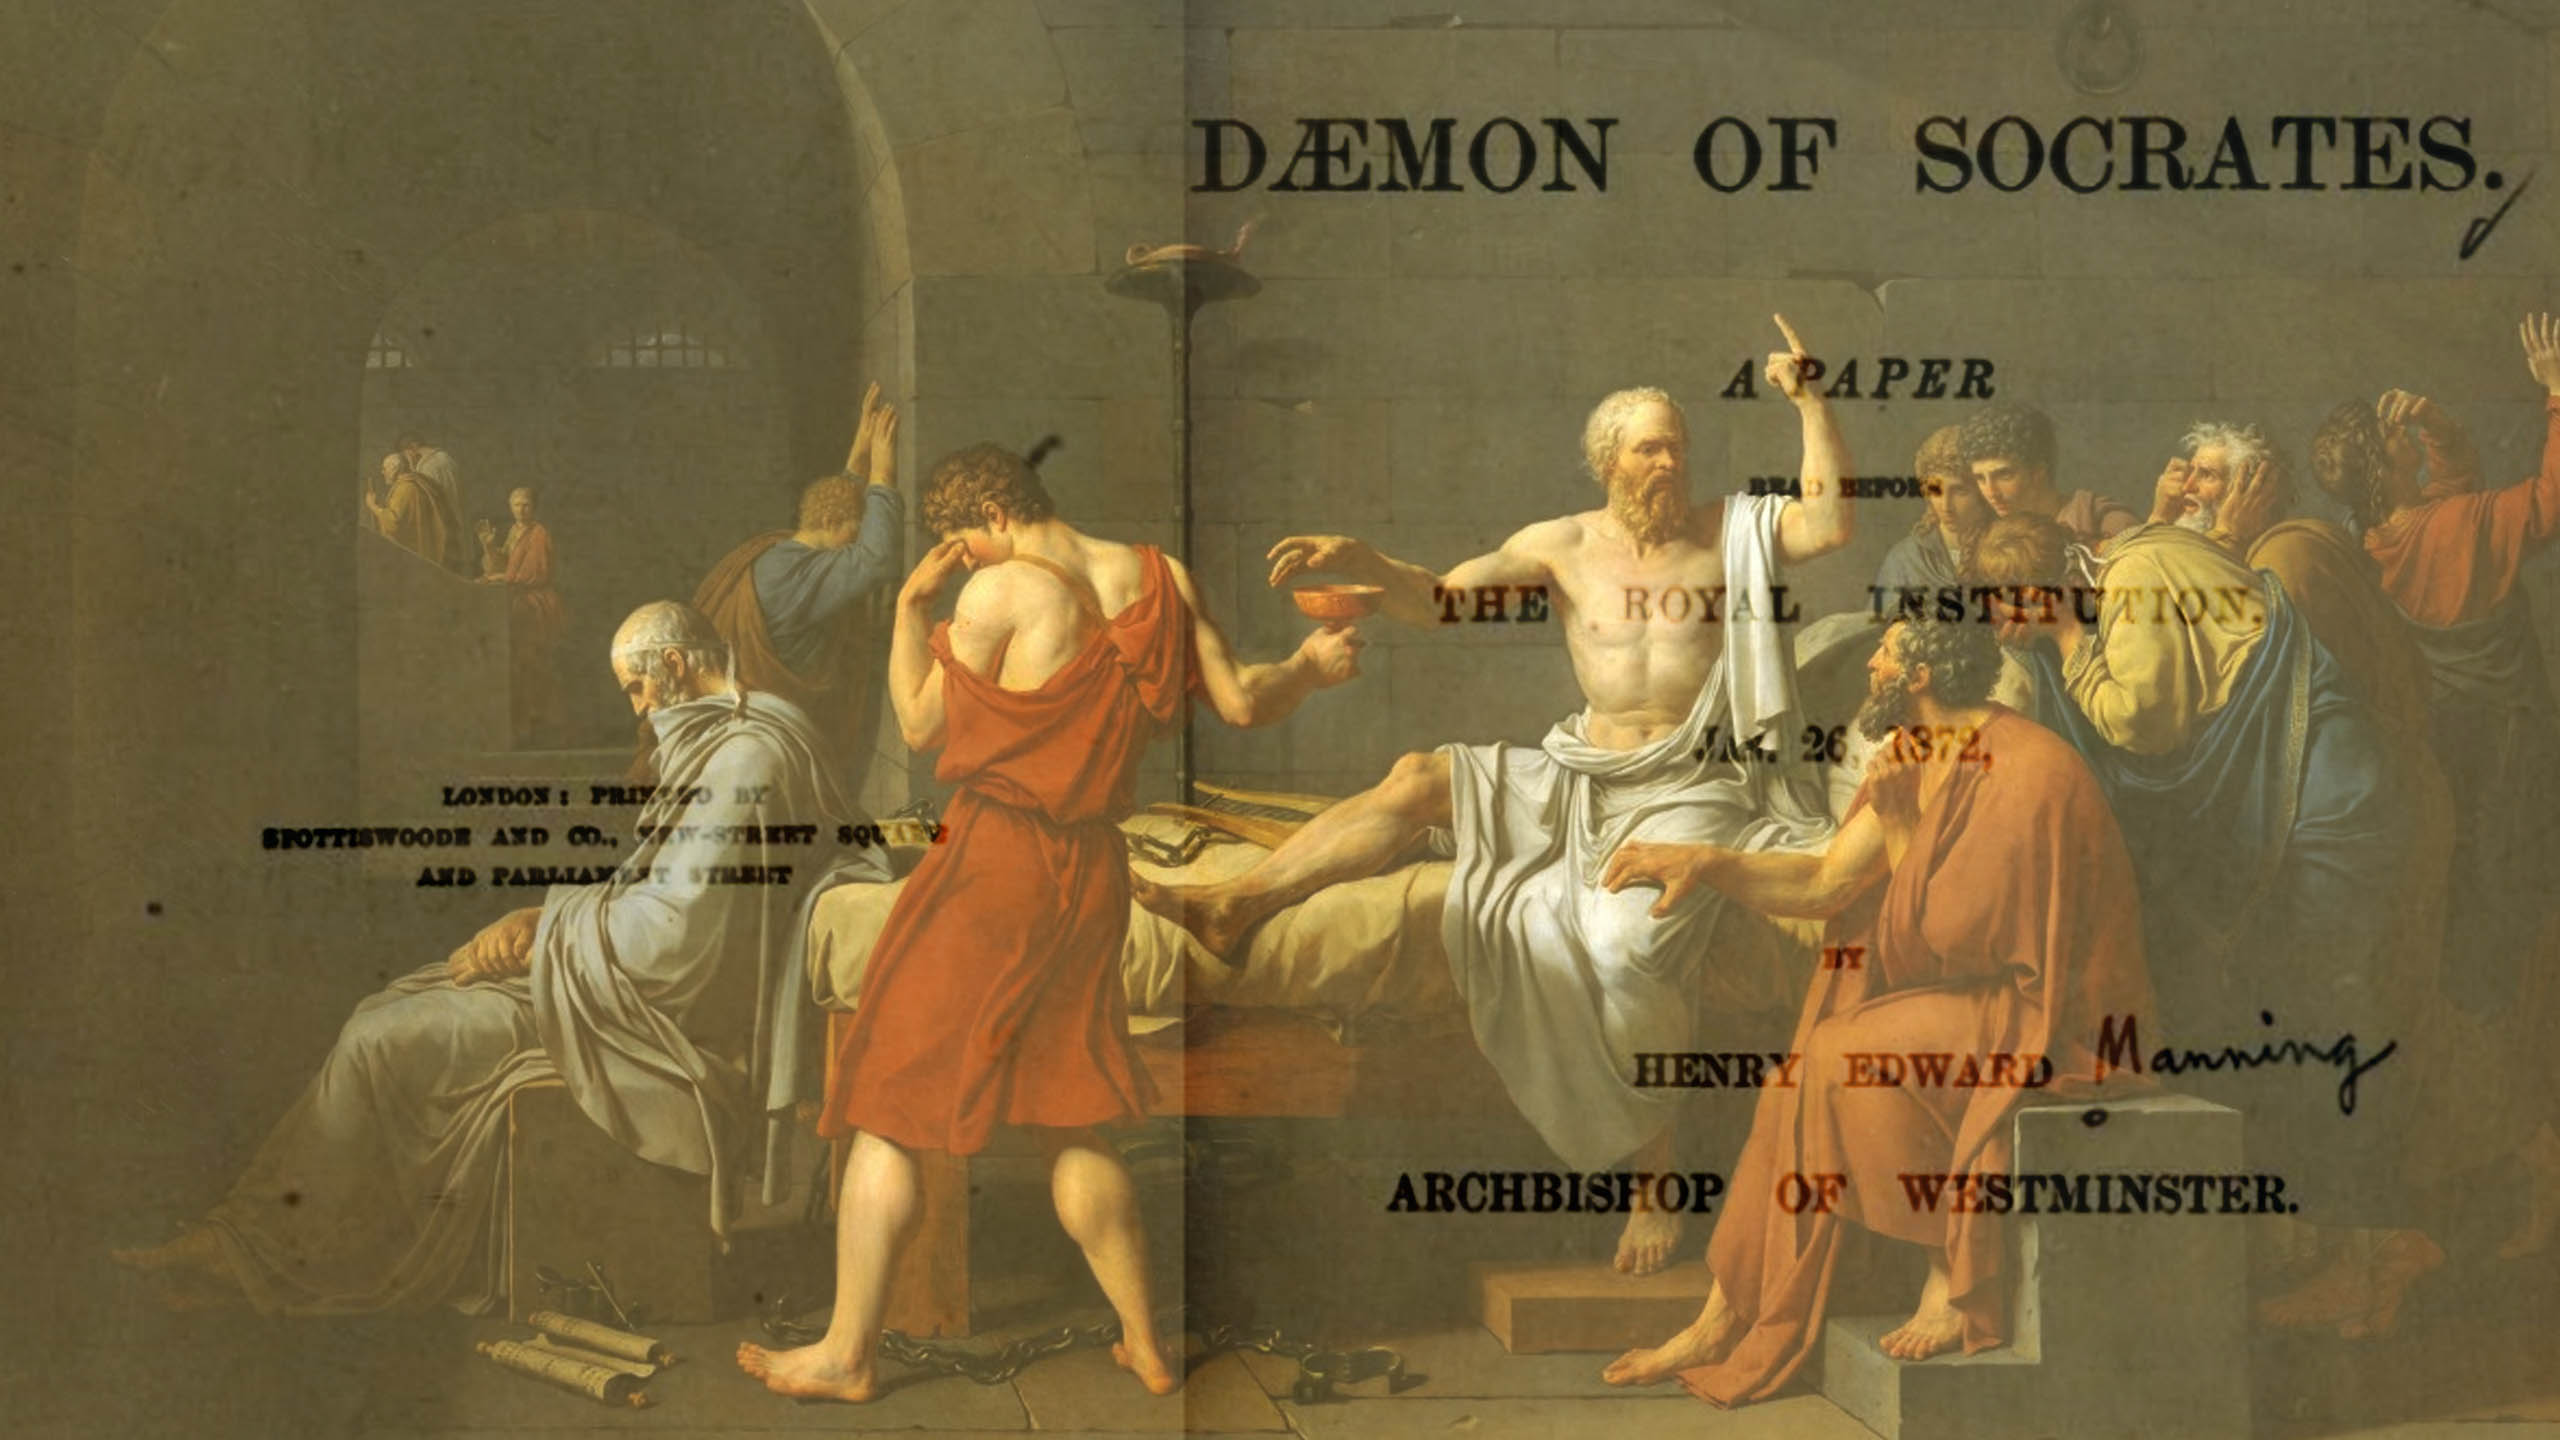 The Daemon of Socrates